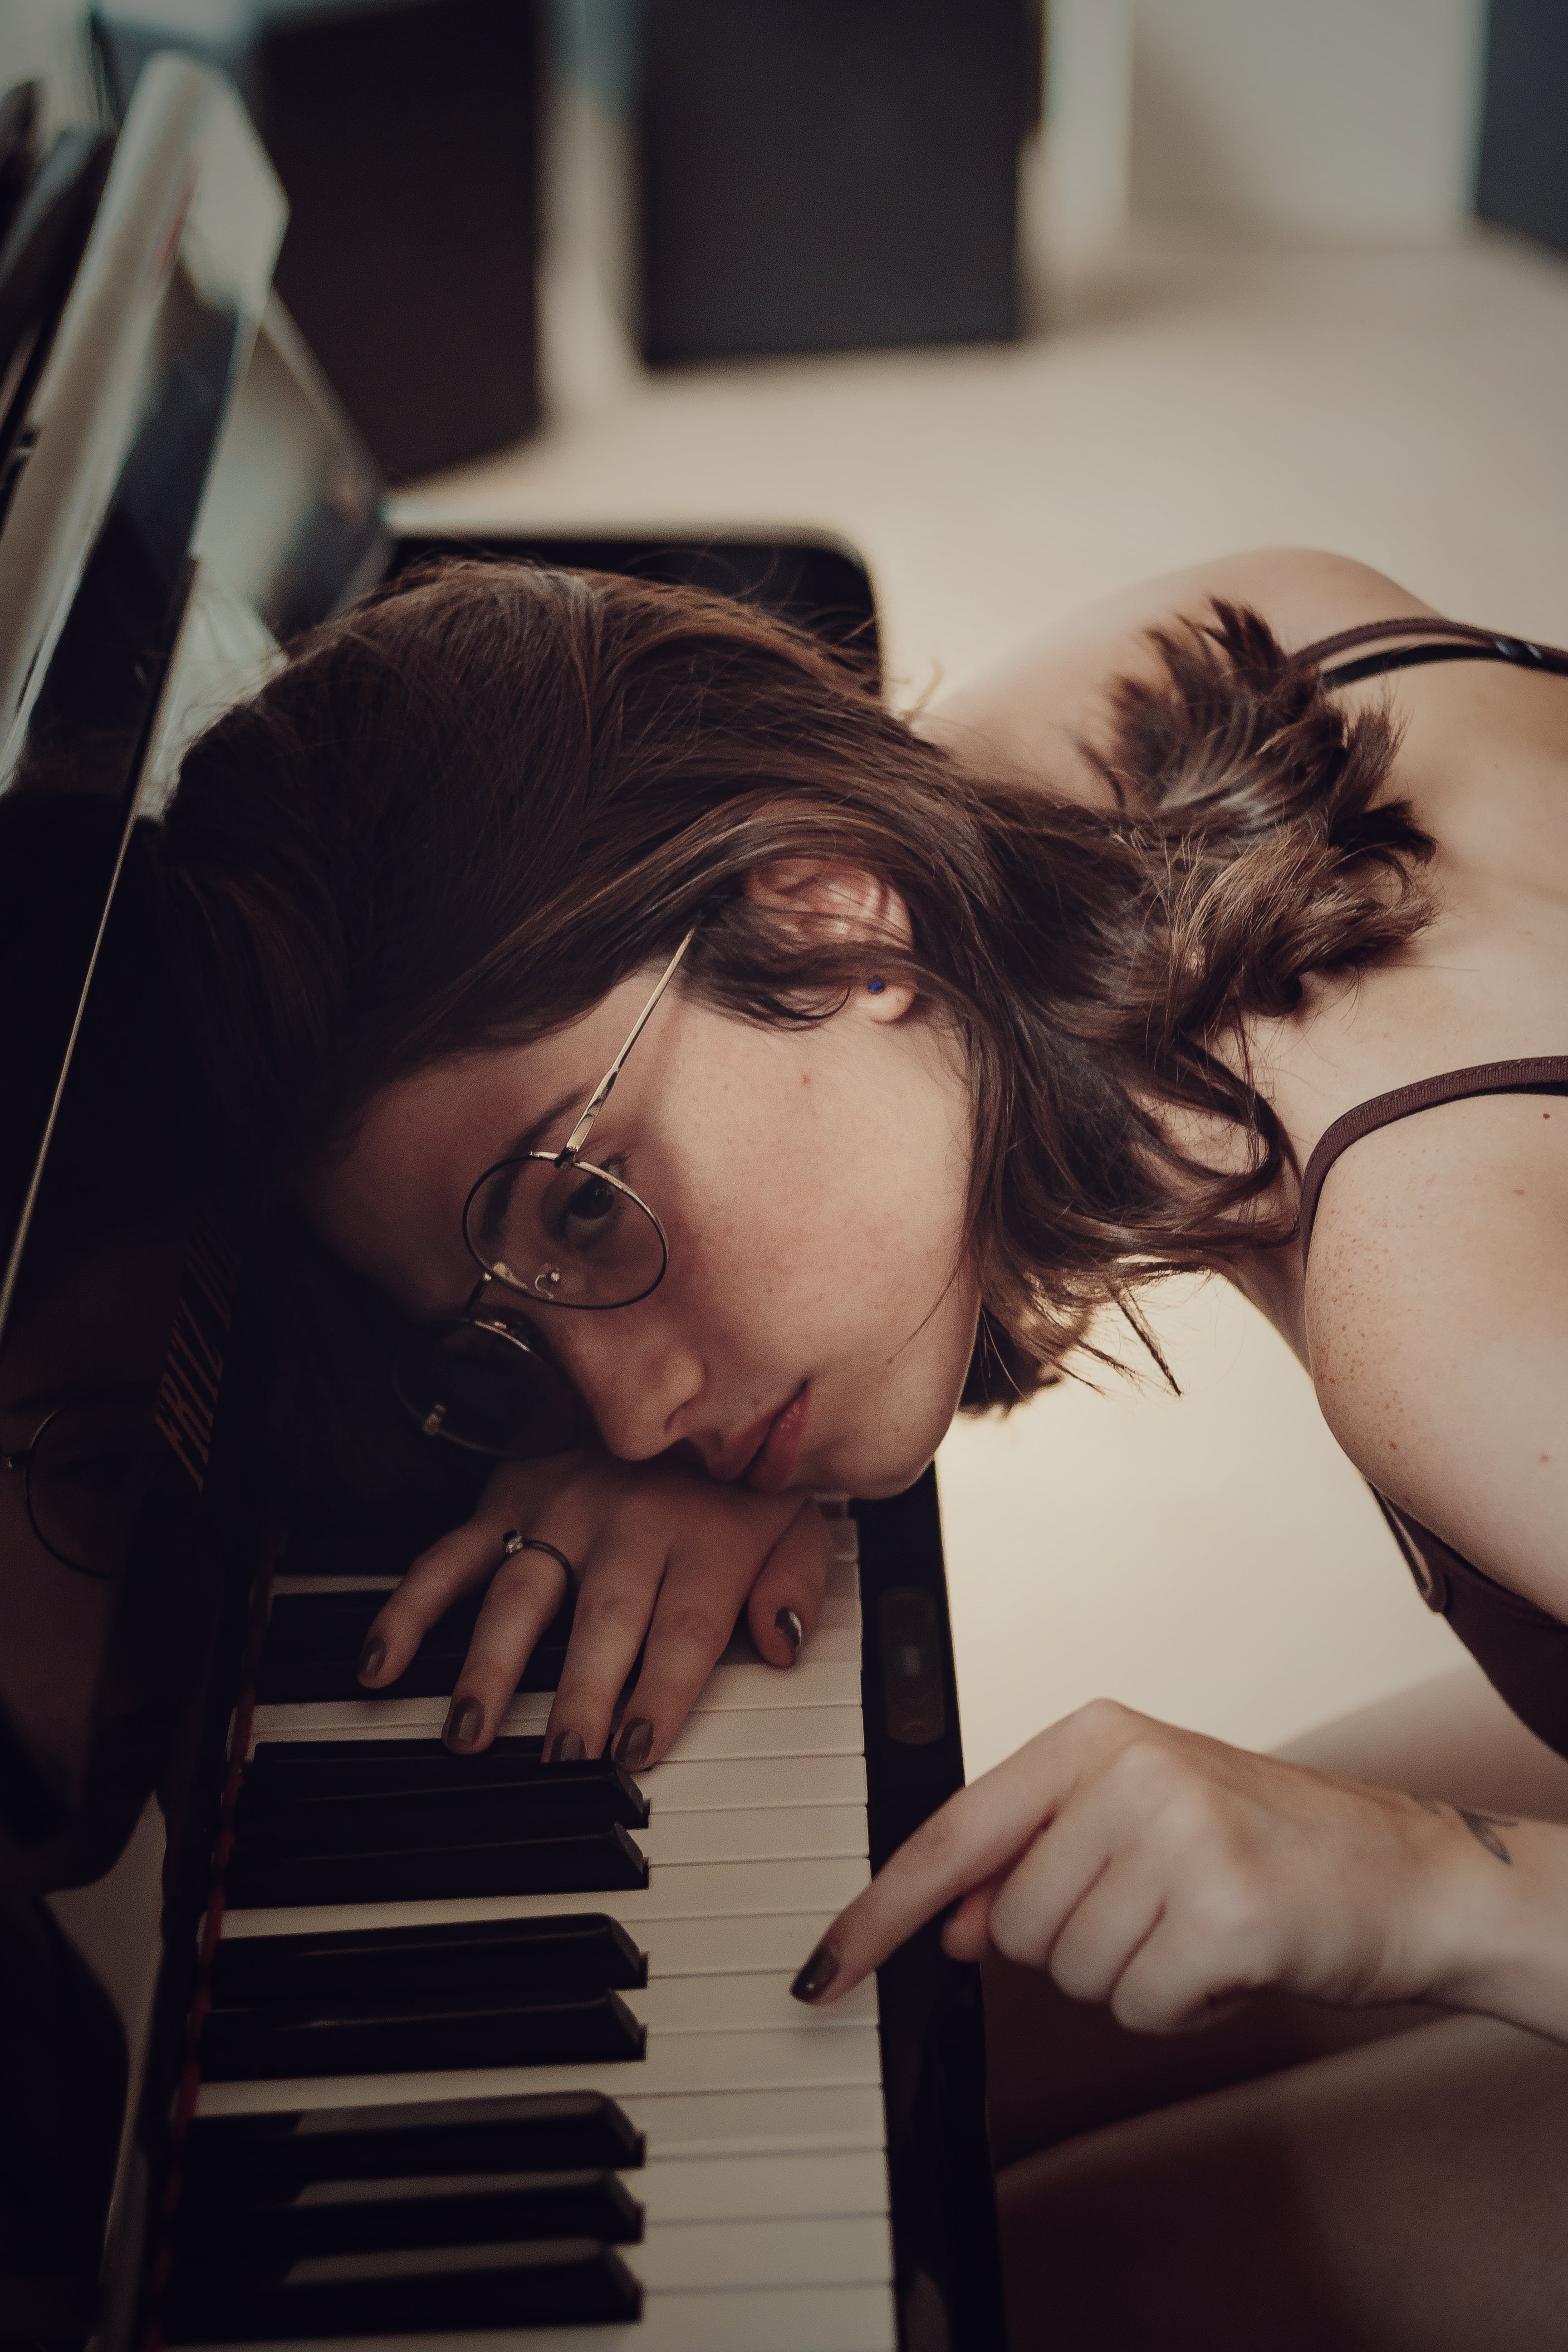 Woman Leaning on Piano Keys